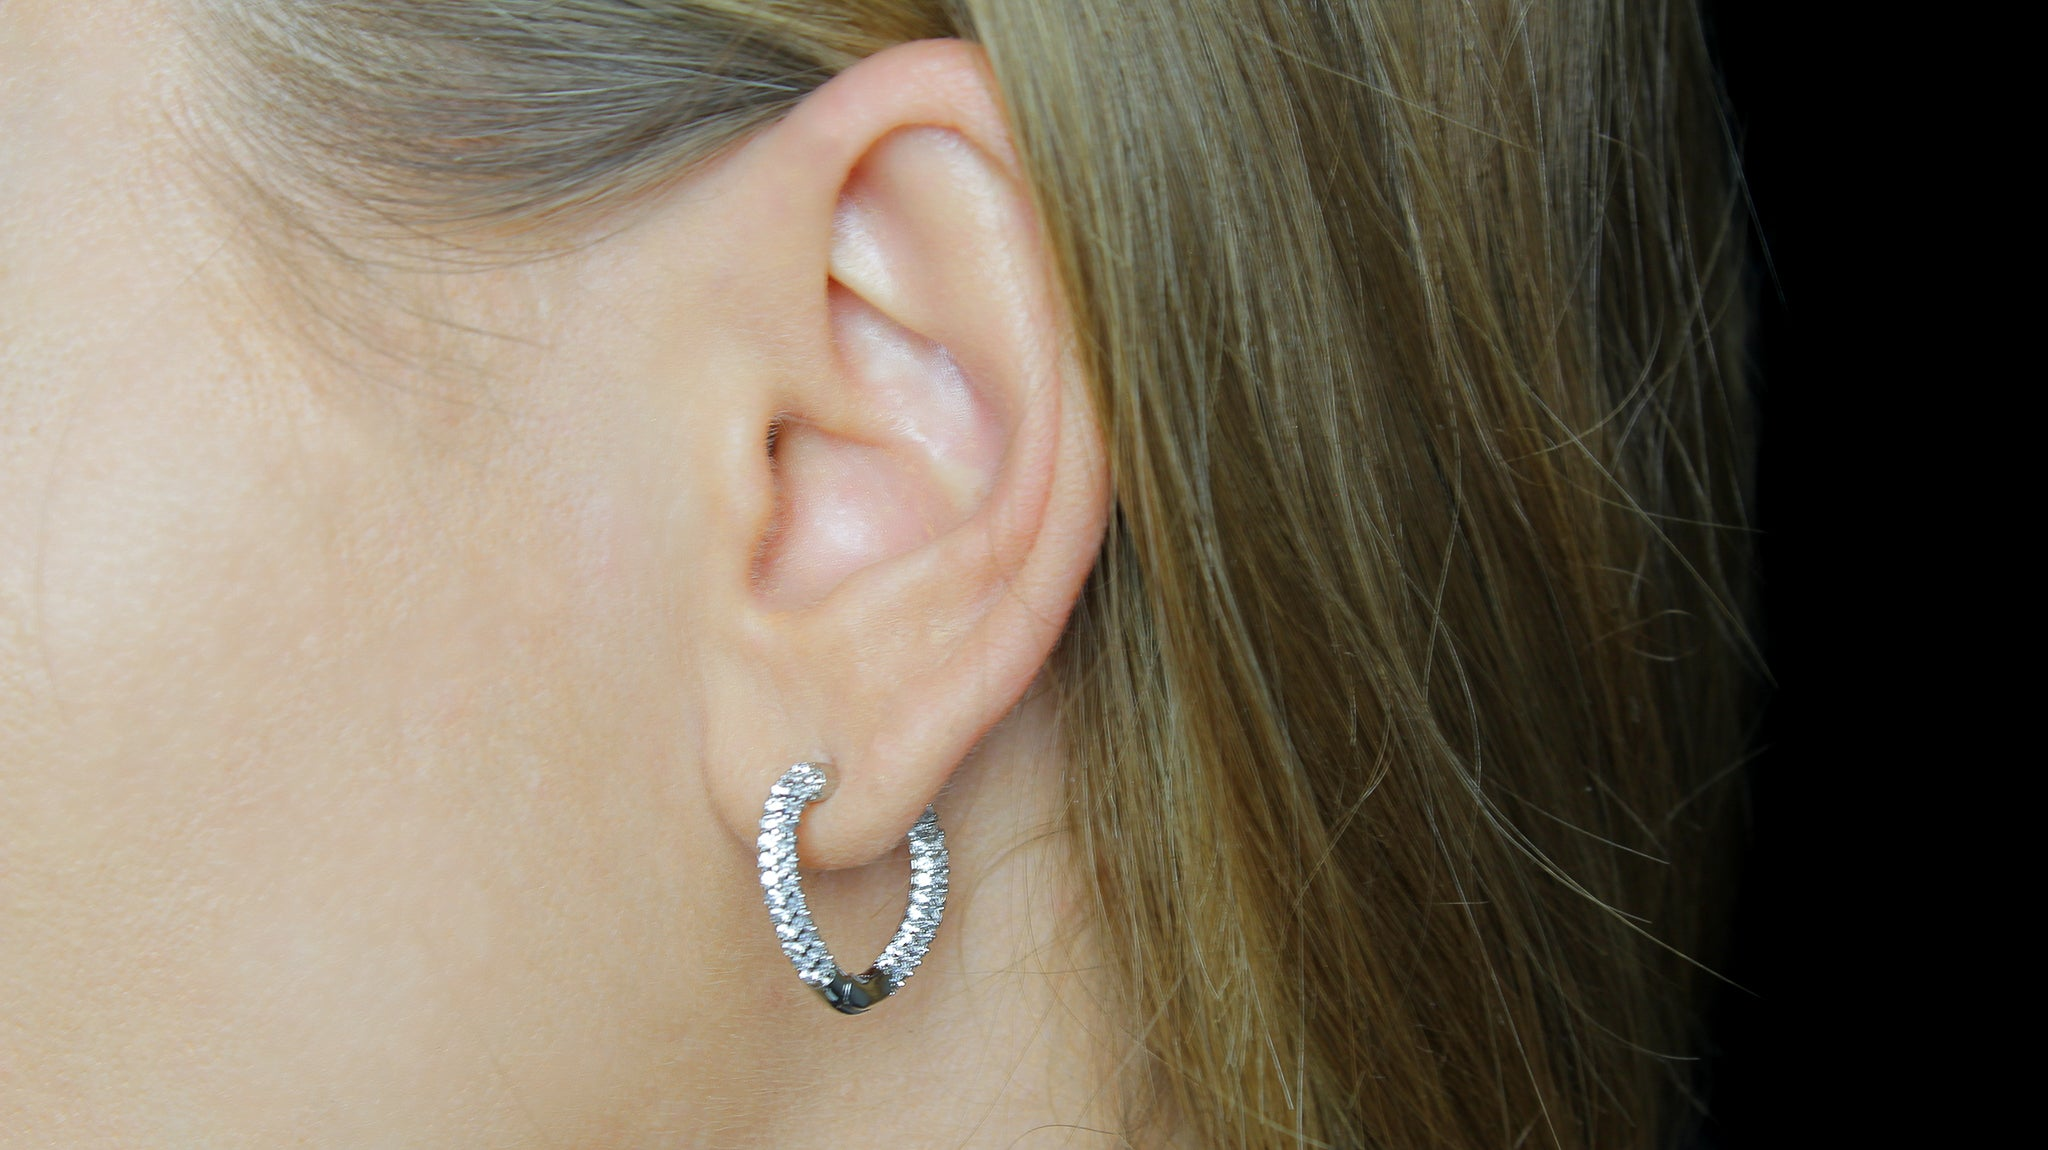 Sophie Hoop Heart Earrings in Silver